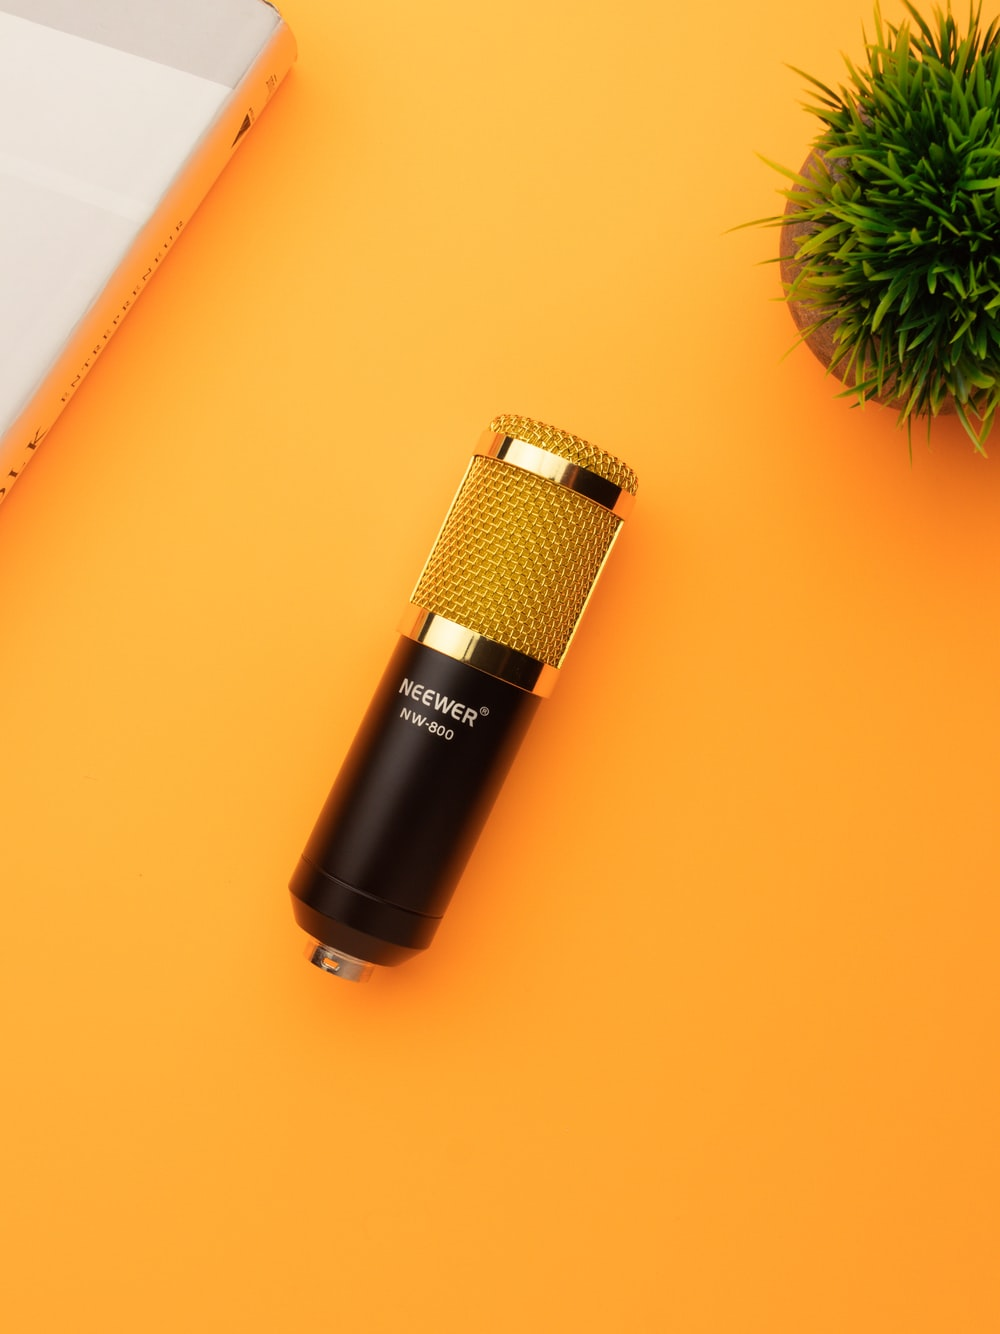 black and silver microphone on orange table